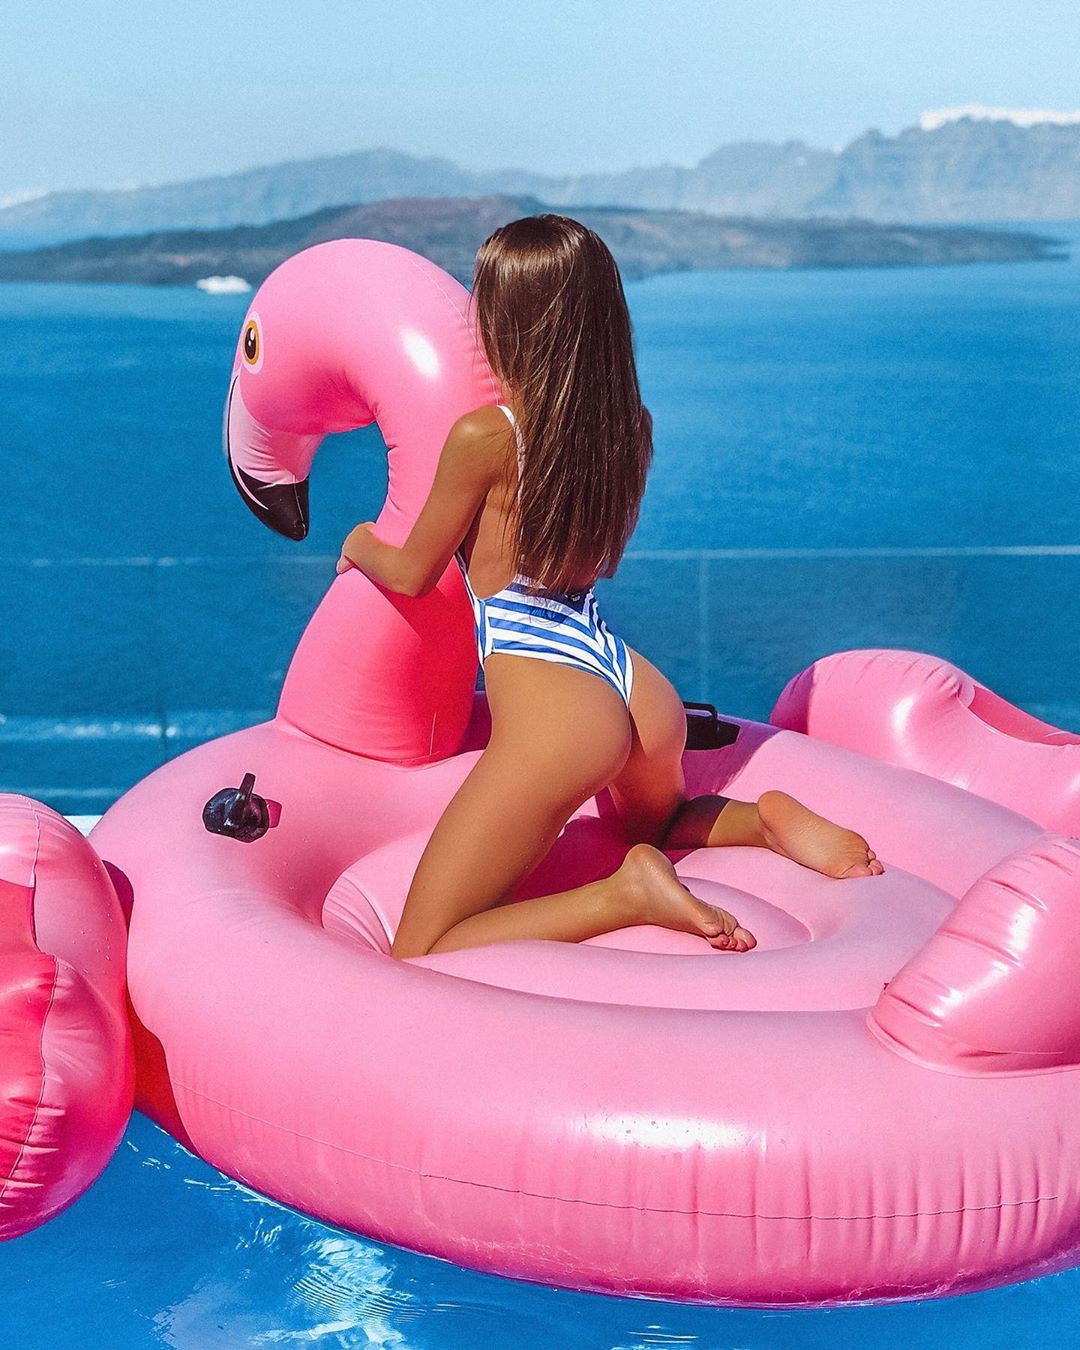 pink outfits for women with swimwear, life enjoyment, water park